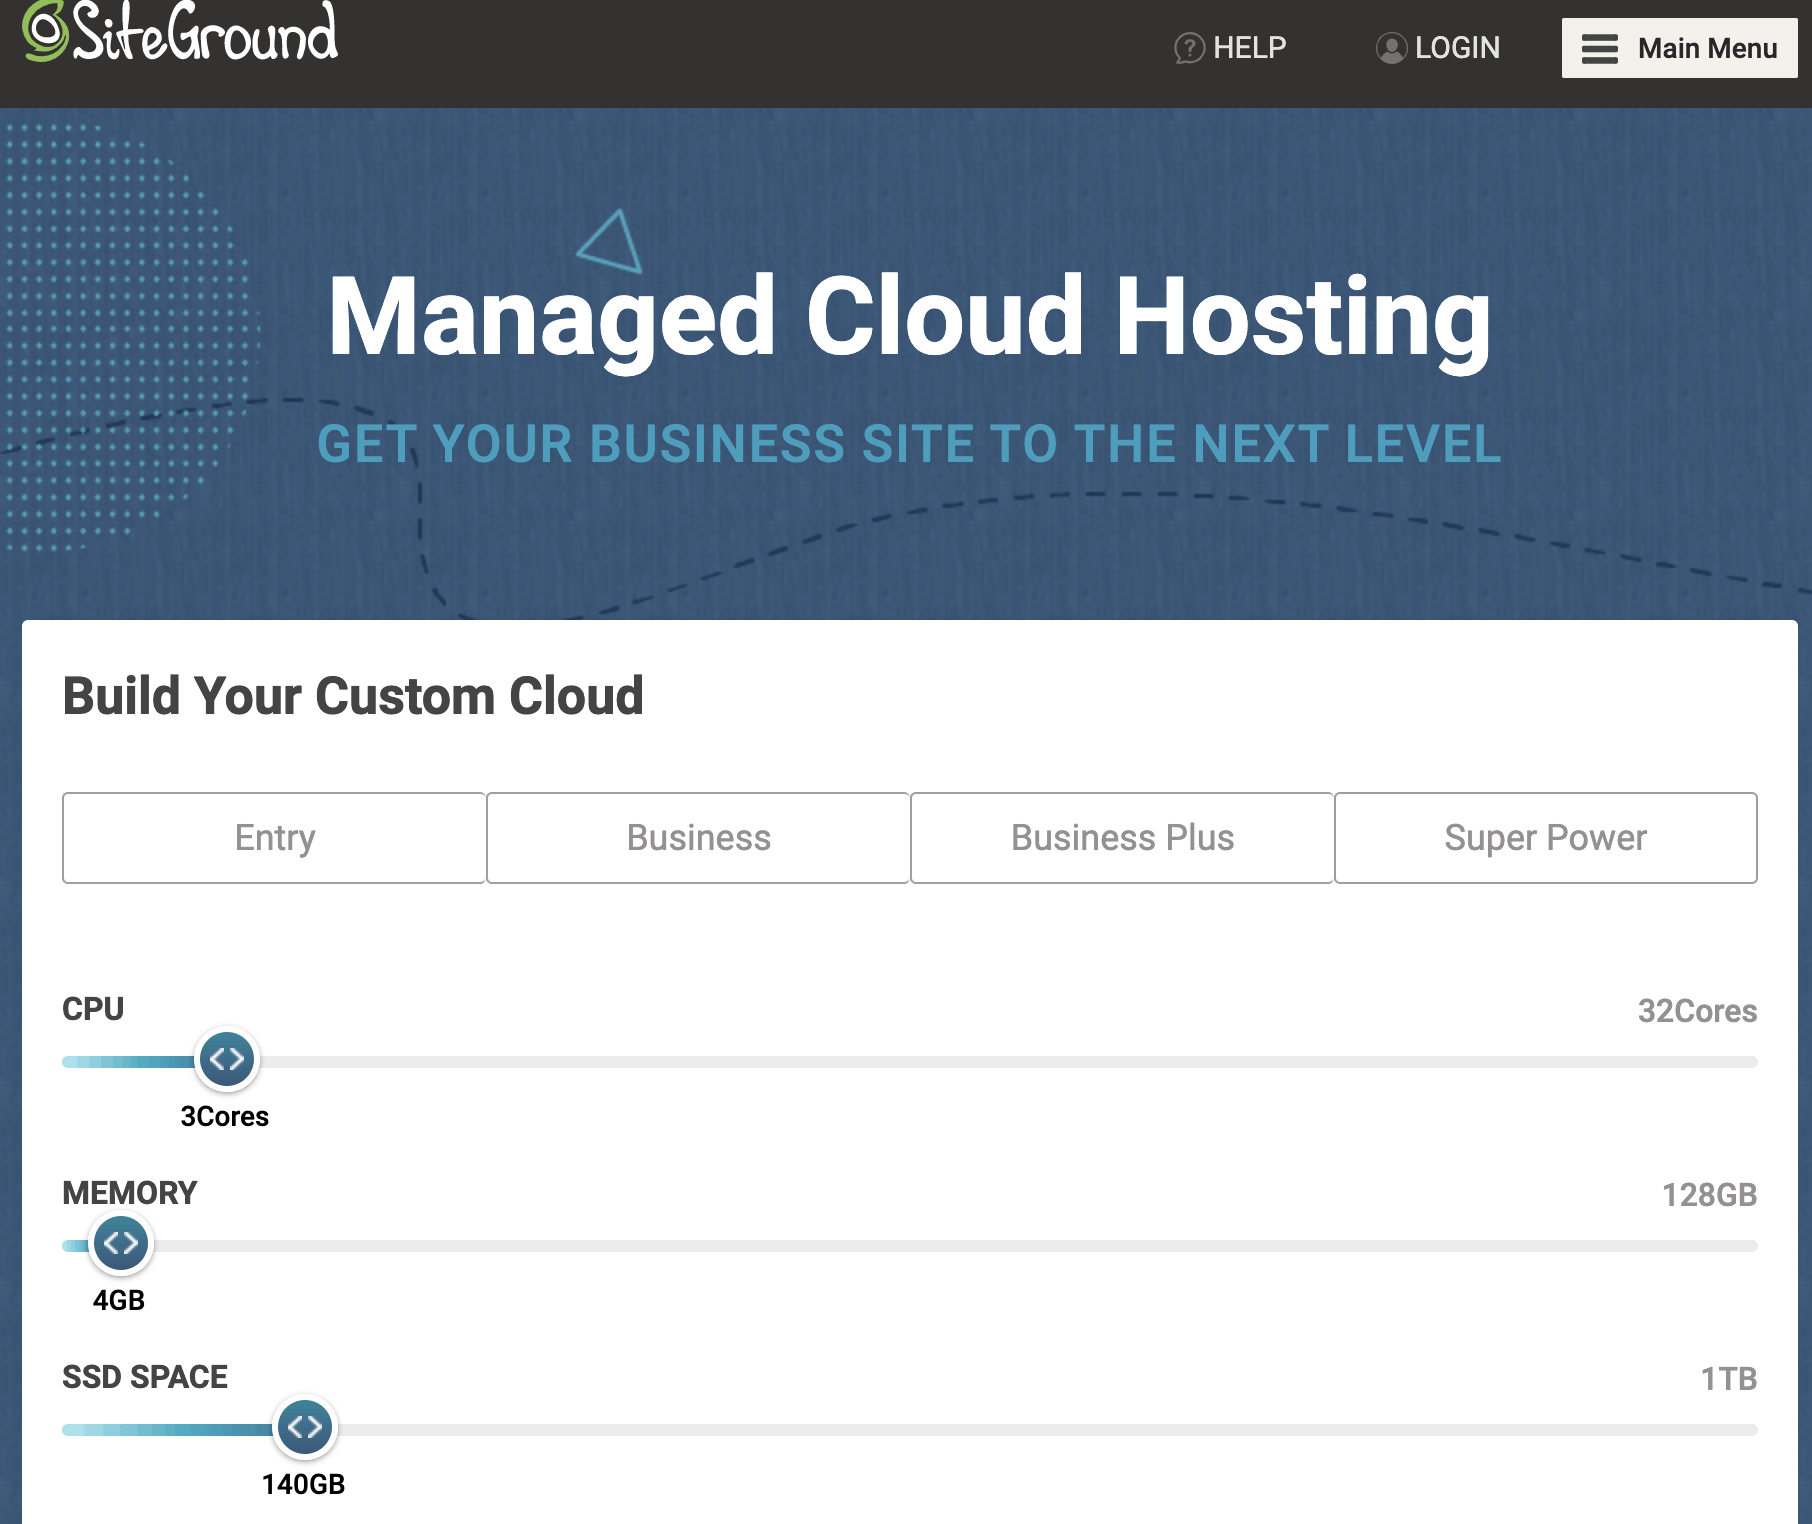 9 Best Cloud Hosting Services - Reliable and Affordable-image5